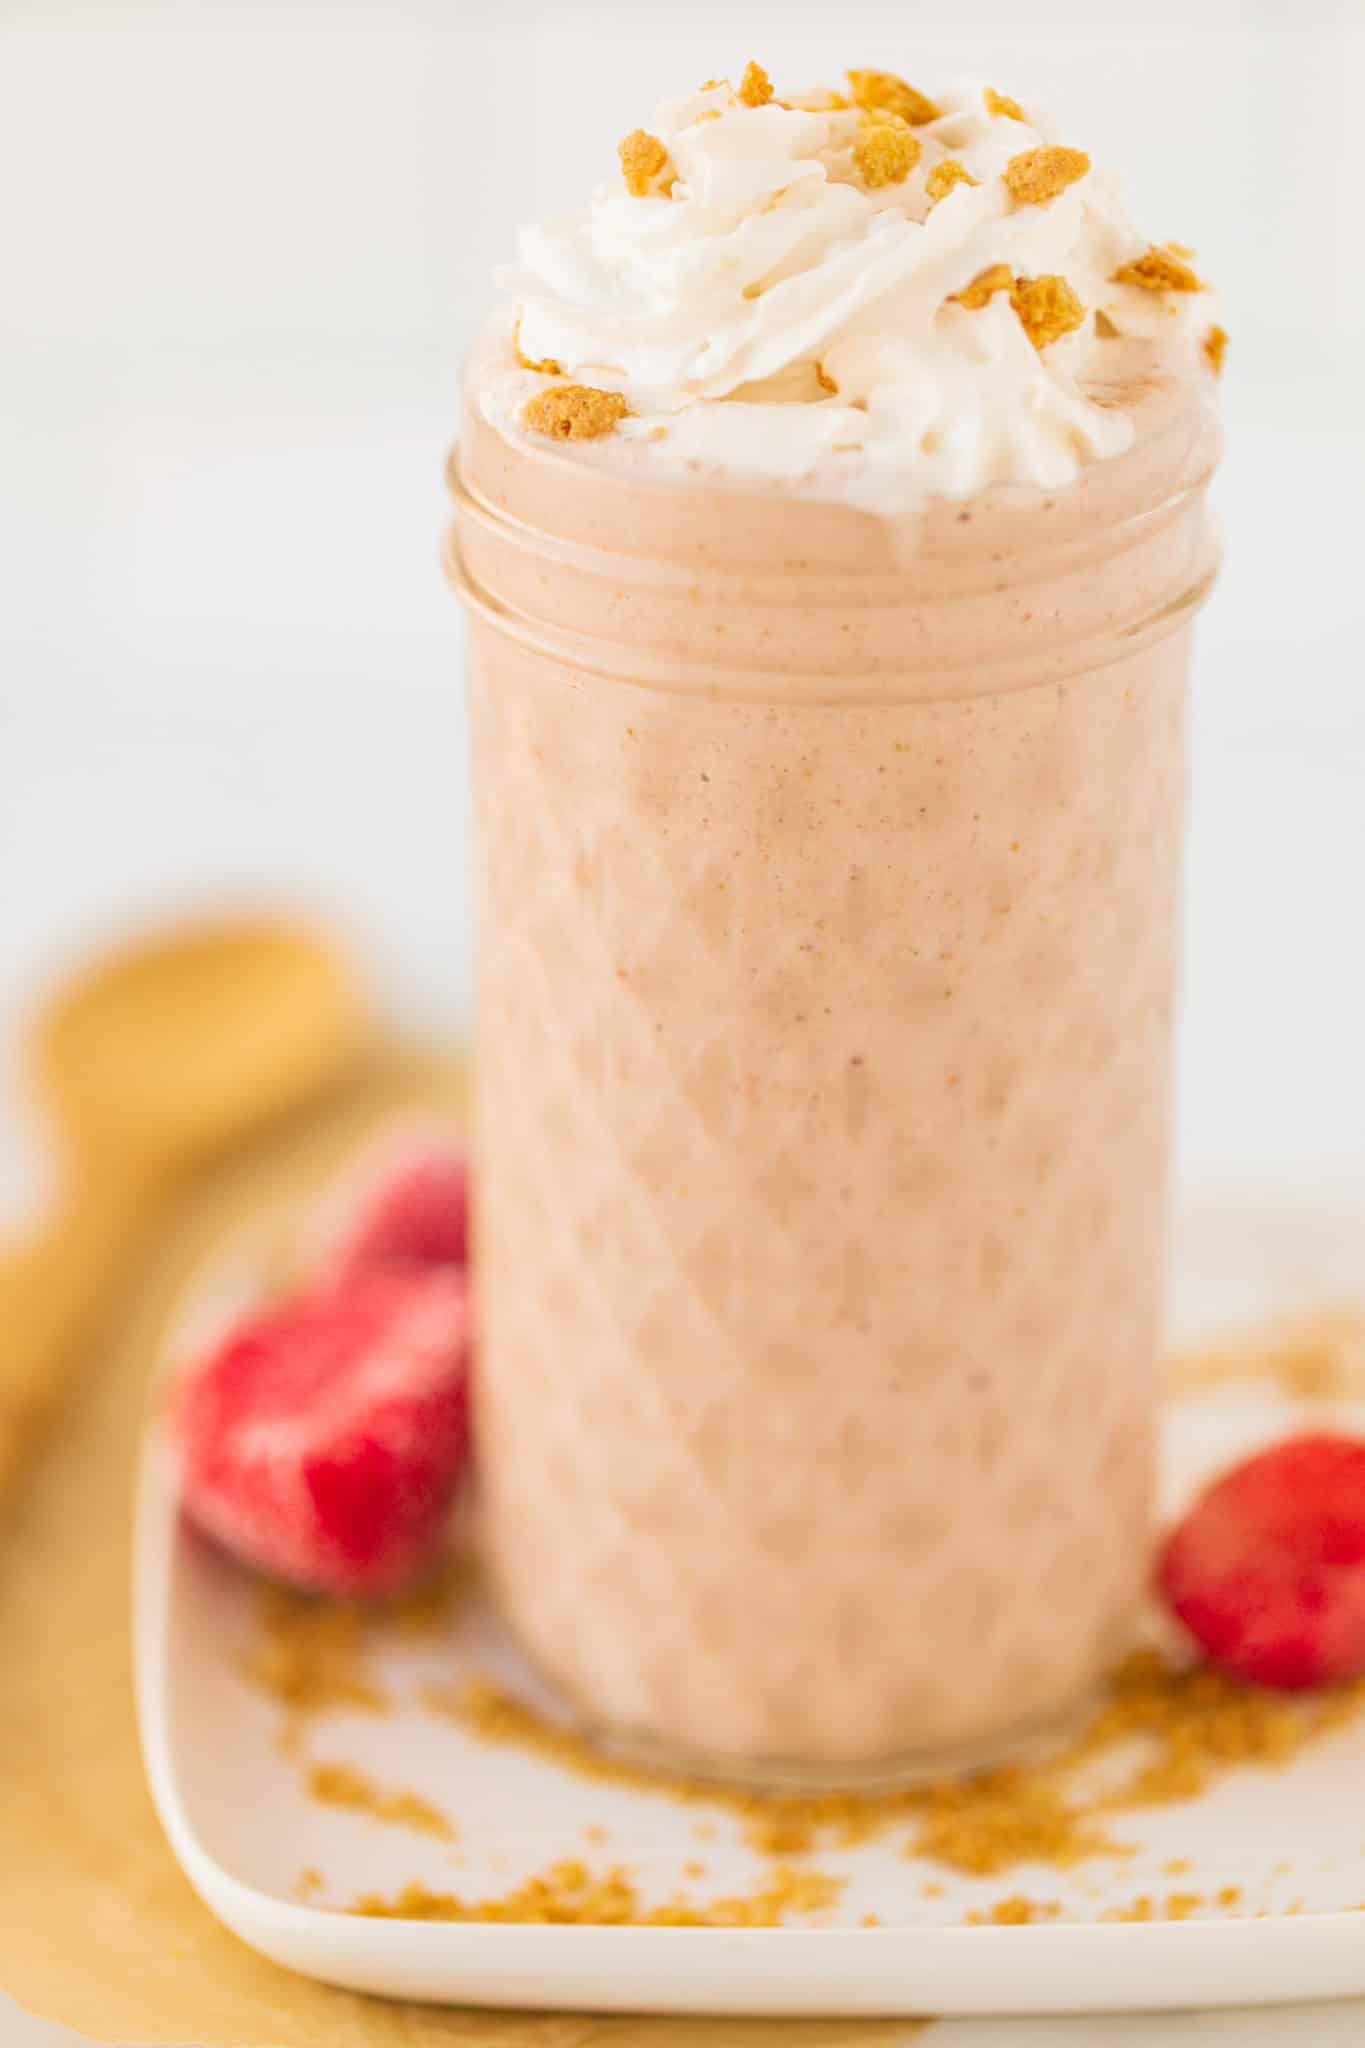 strawberry cheesecake smoothie served with whipped cream and crumbled vanilla wafer cookies